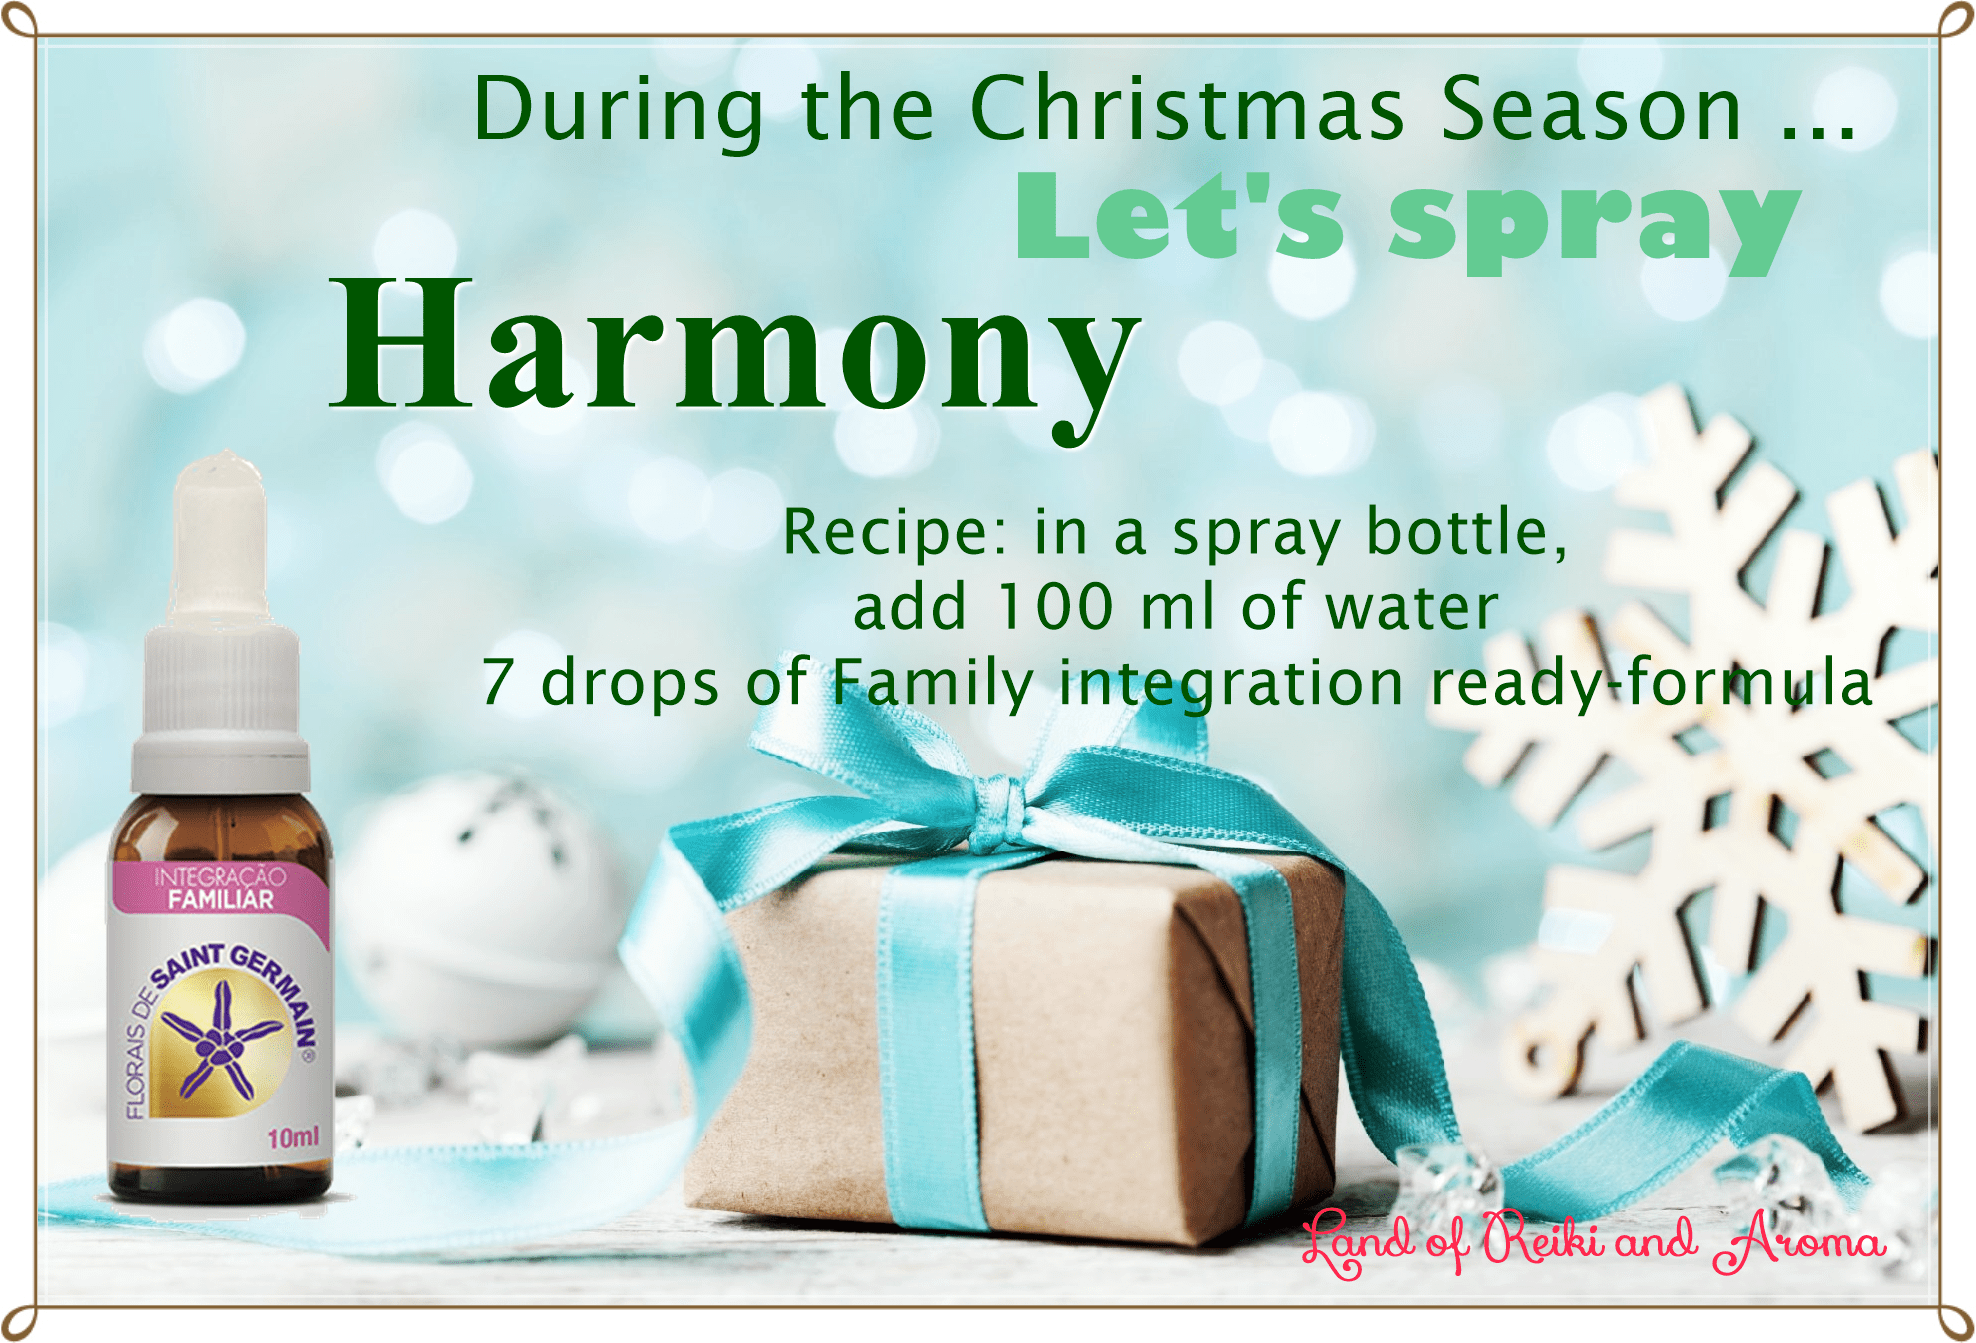 Lets spray harmony